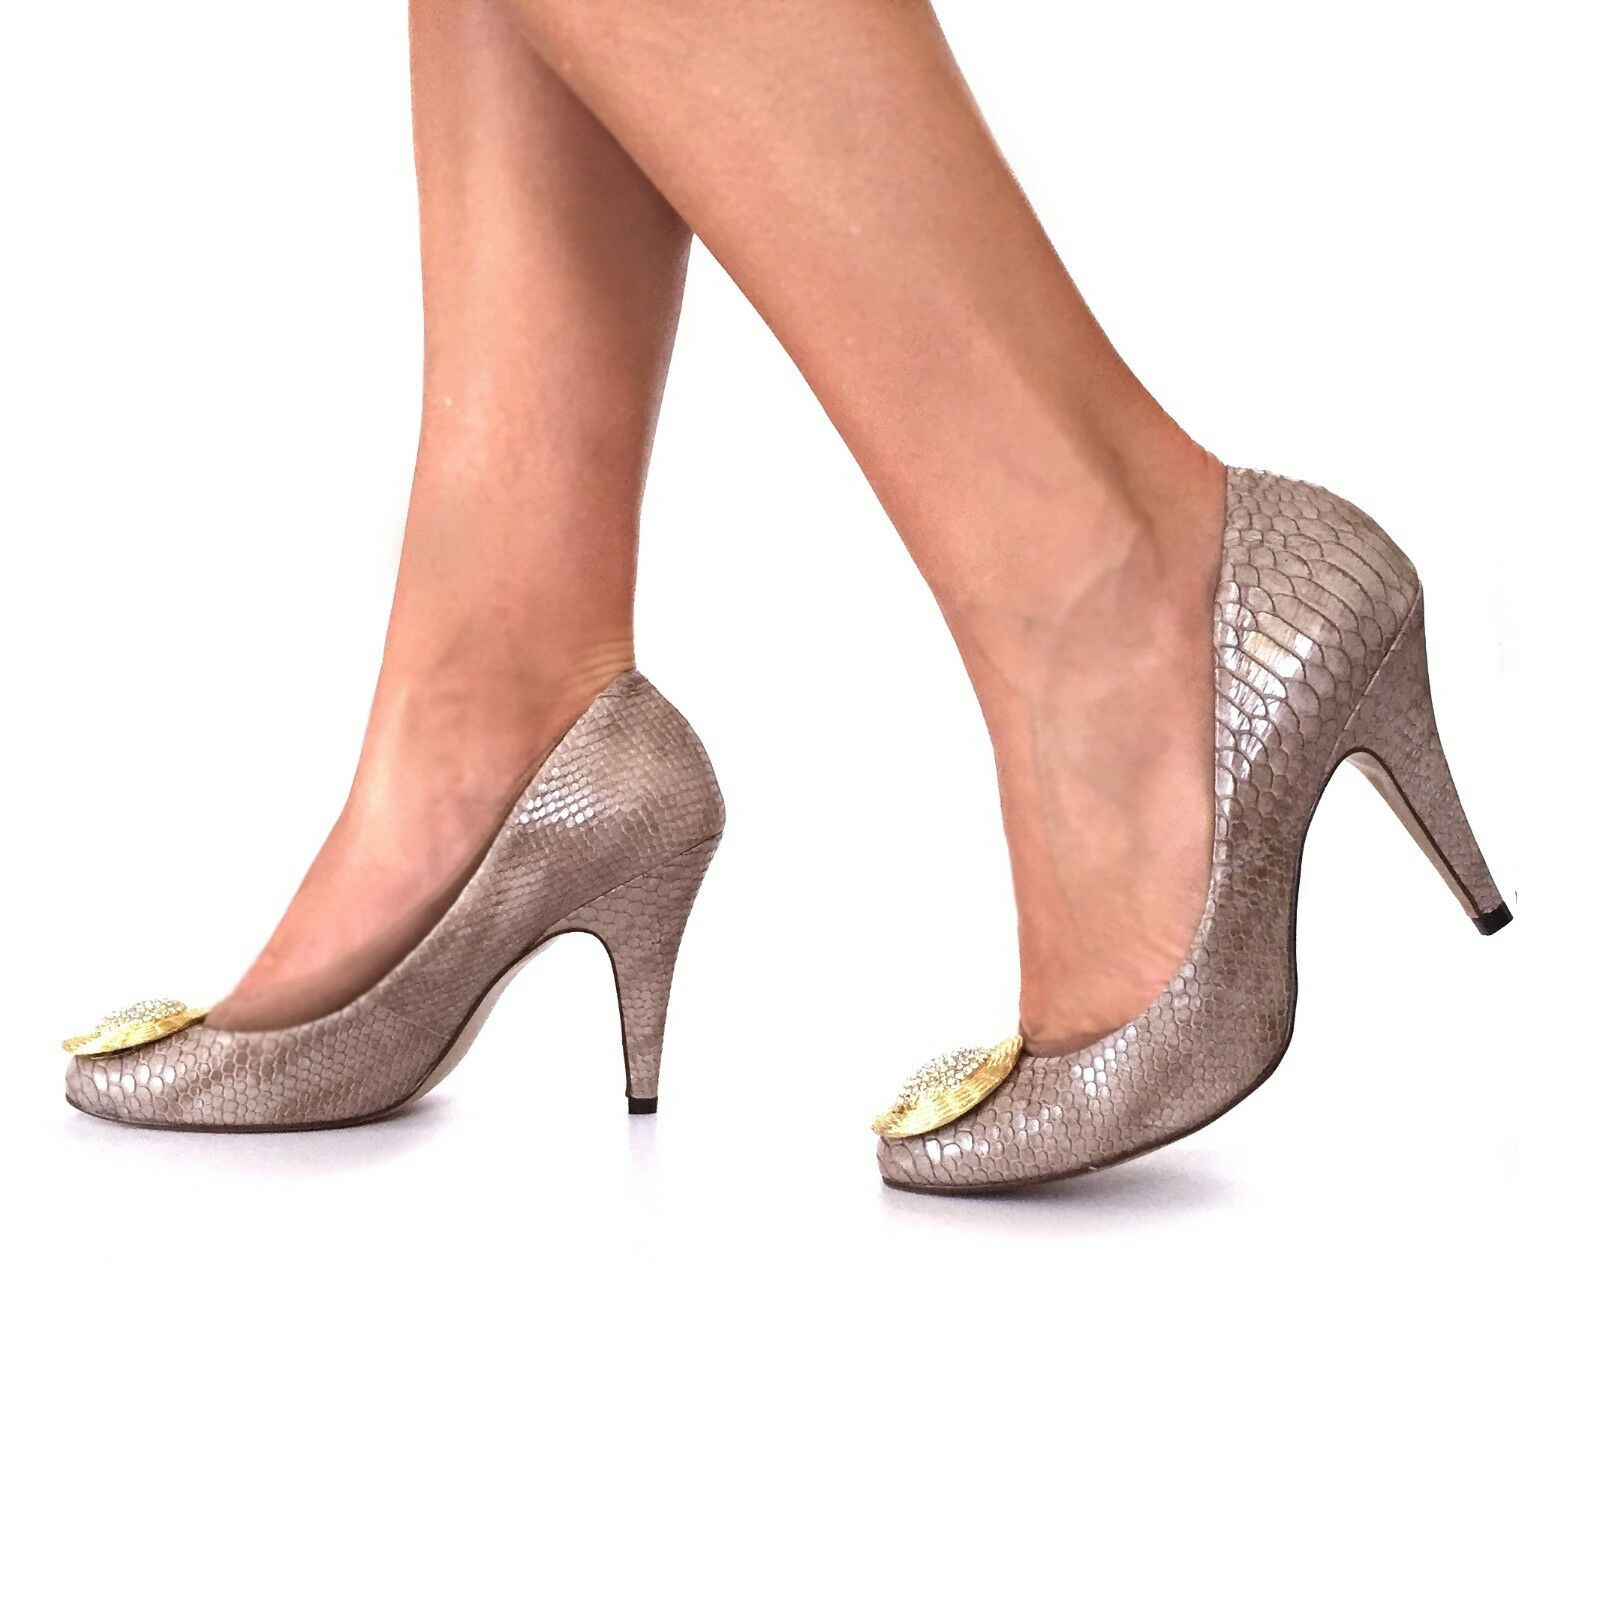 Leather Pumps shoes Mid Heel Rounded Womens embossed snake pink nude crystal